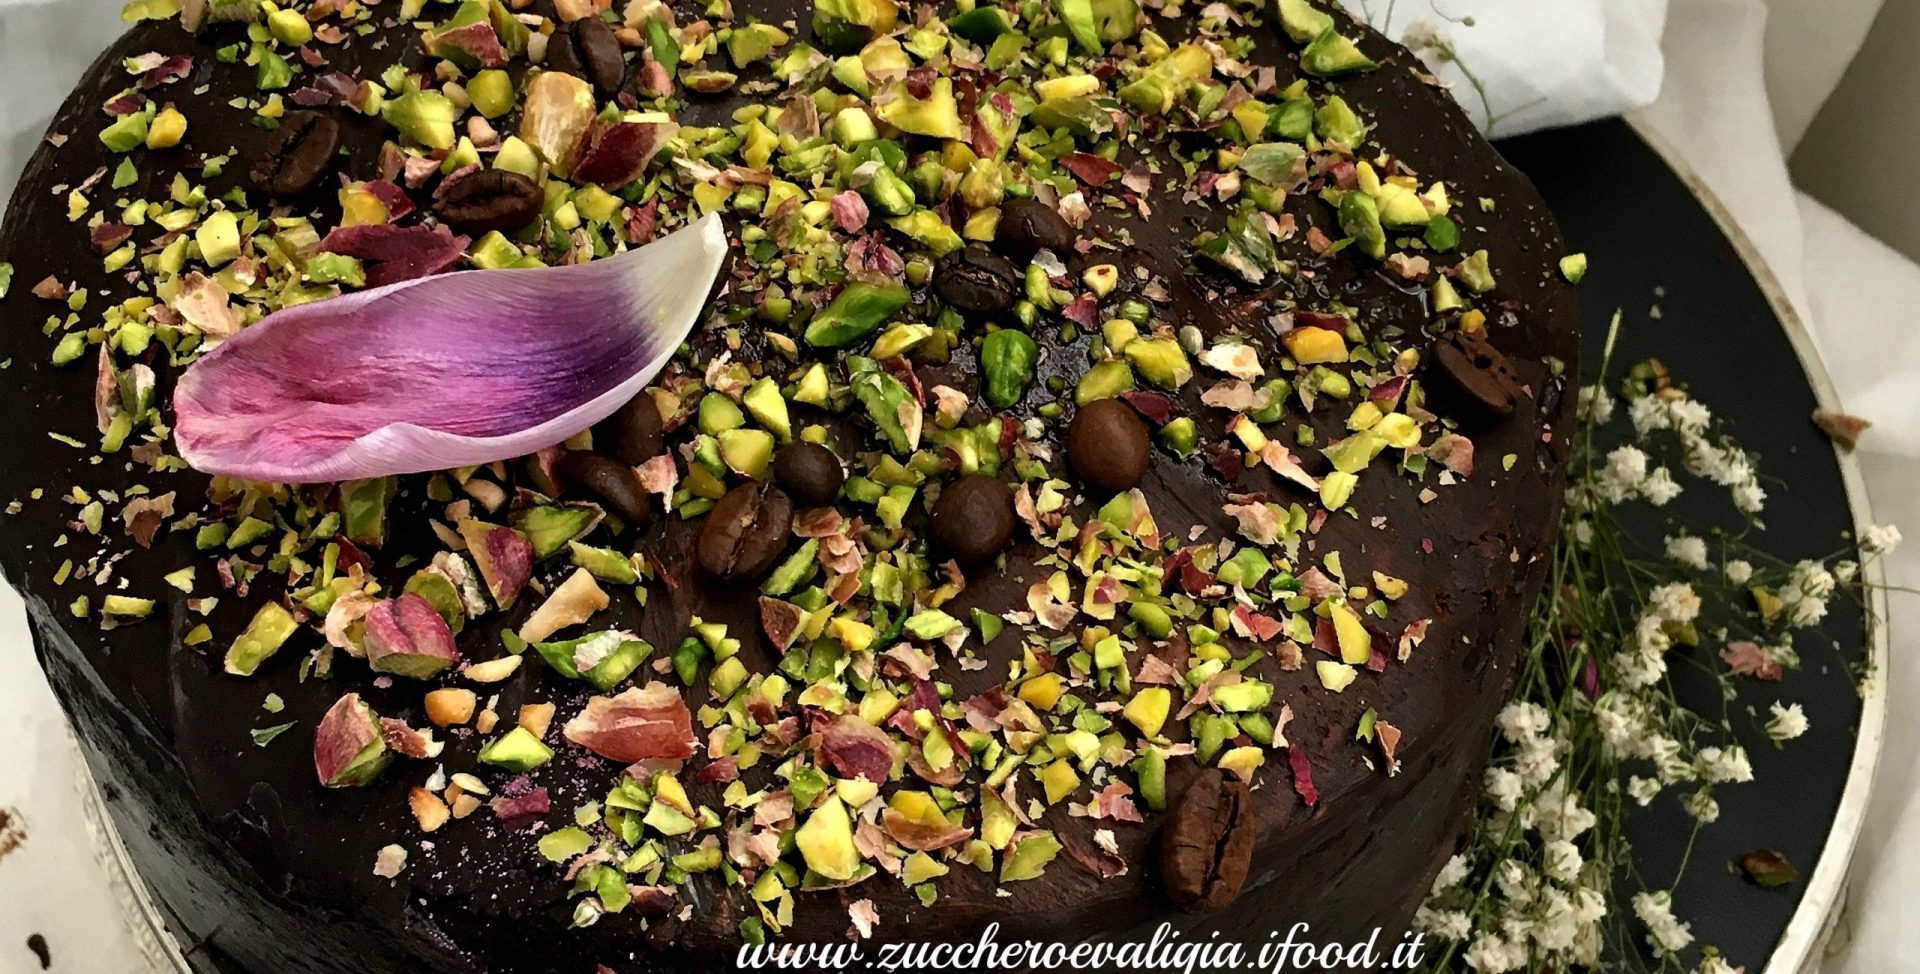 Torta cioccolato e barbabietola chocolate beetrot cake re cake 2.0 ---